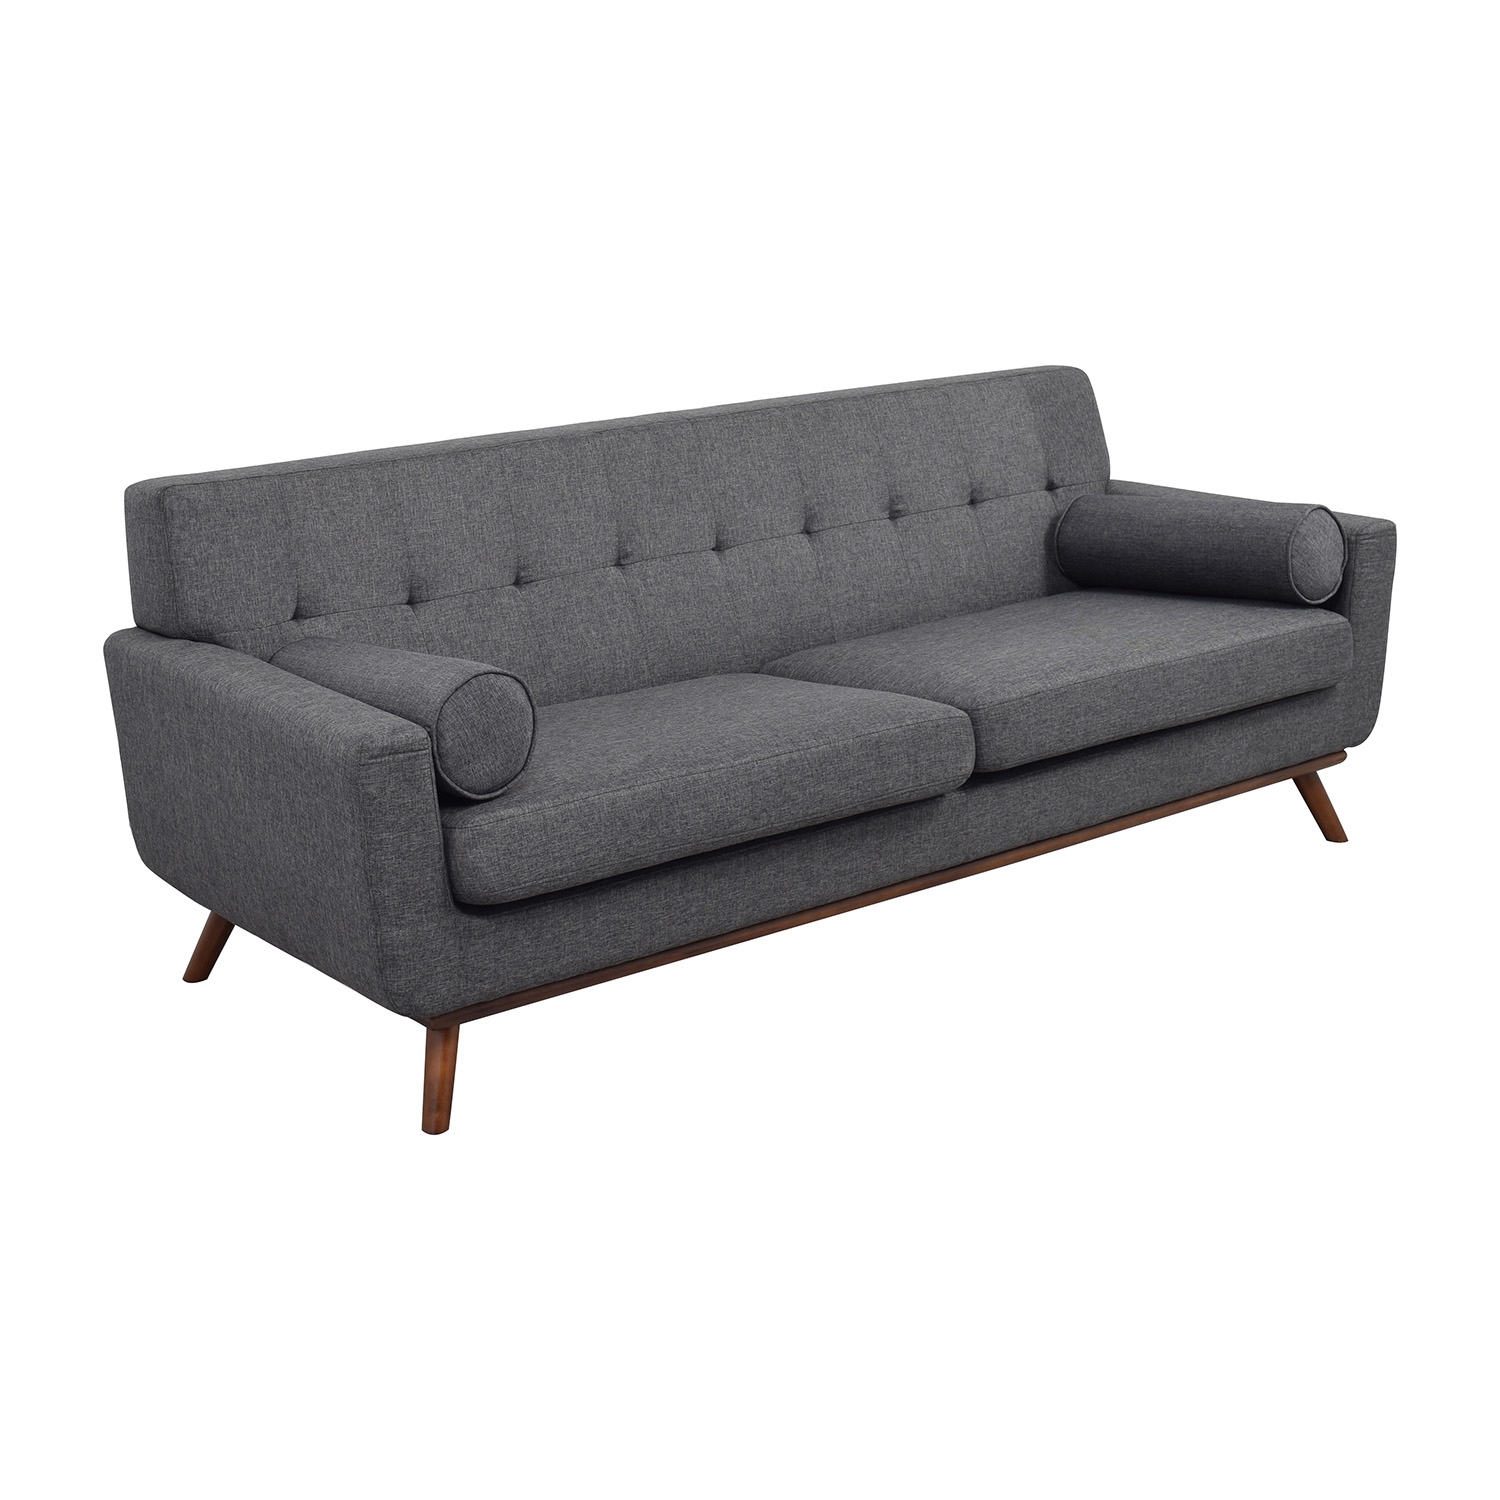 charcoal gray tufted sofa high leg 30 off inmod grey lars with